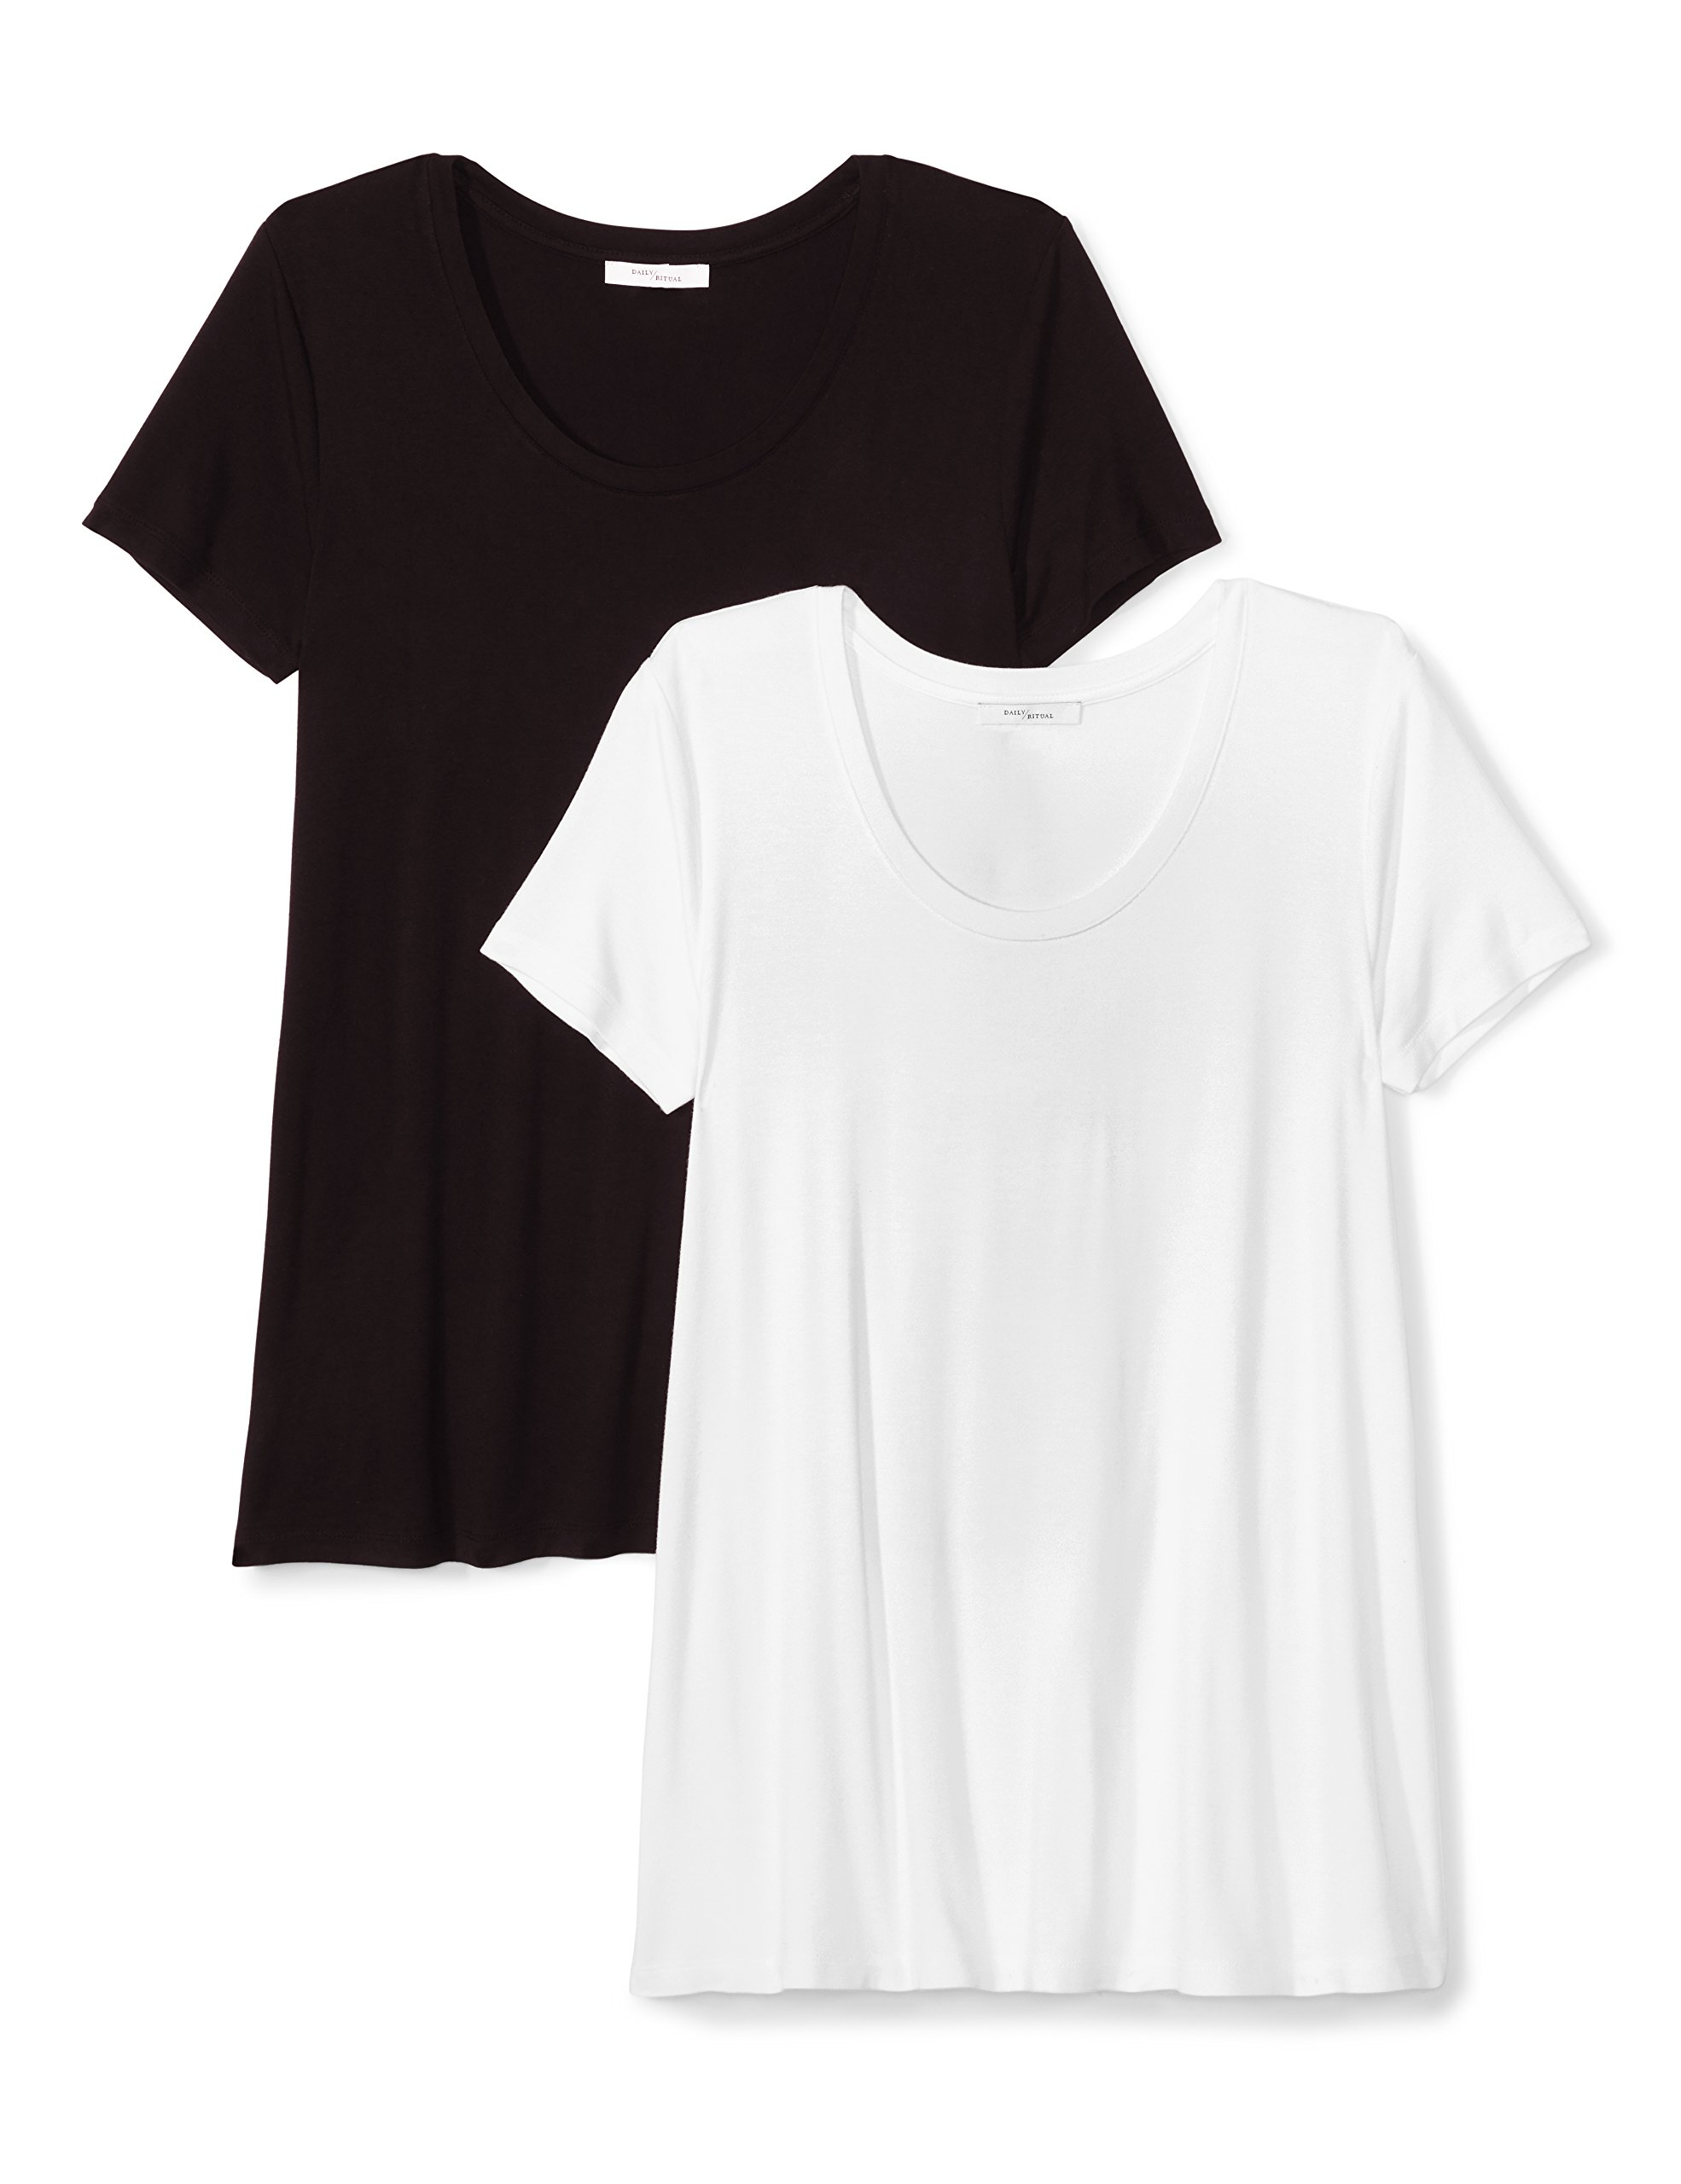 Daily Ritual Women's Jersey Short-Sleeve Scoop Neck Swing T-Shirt, 2-Pack, M, Black/White